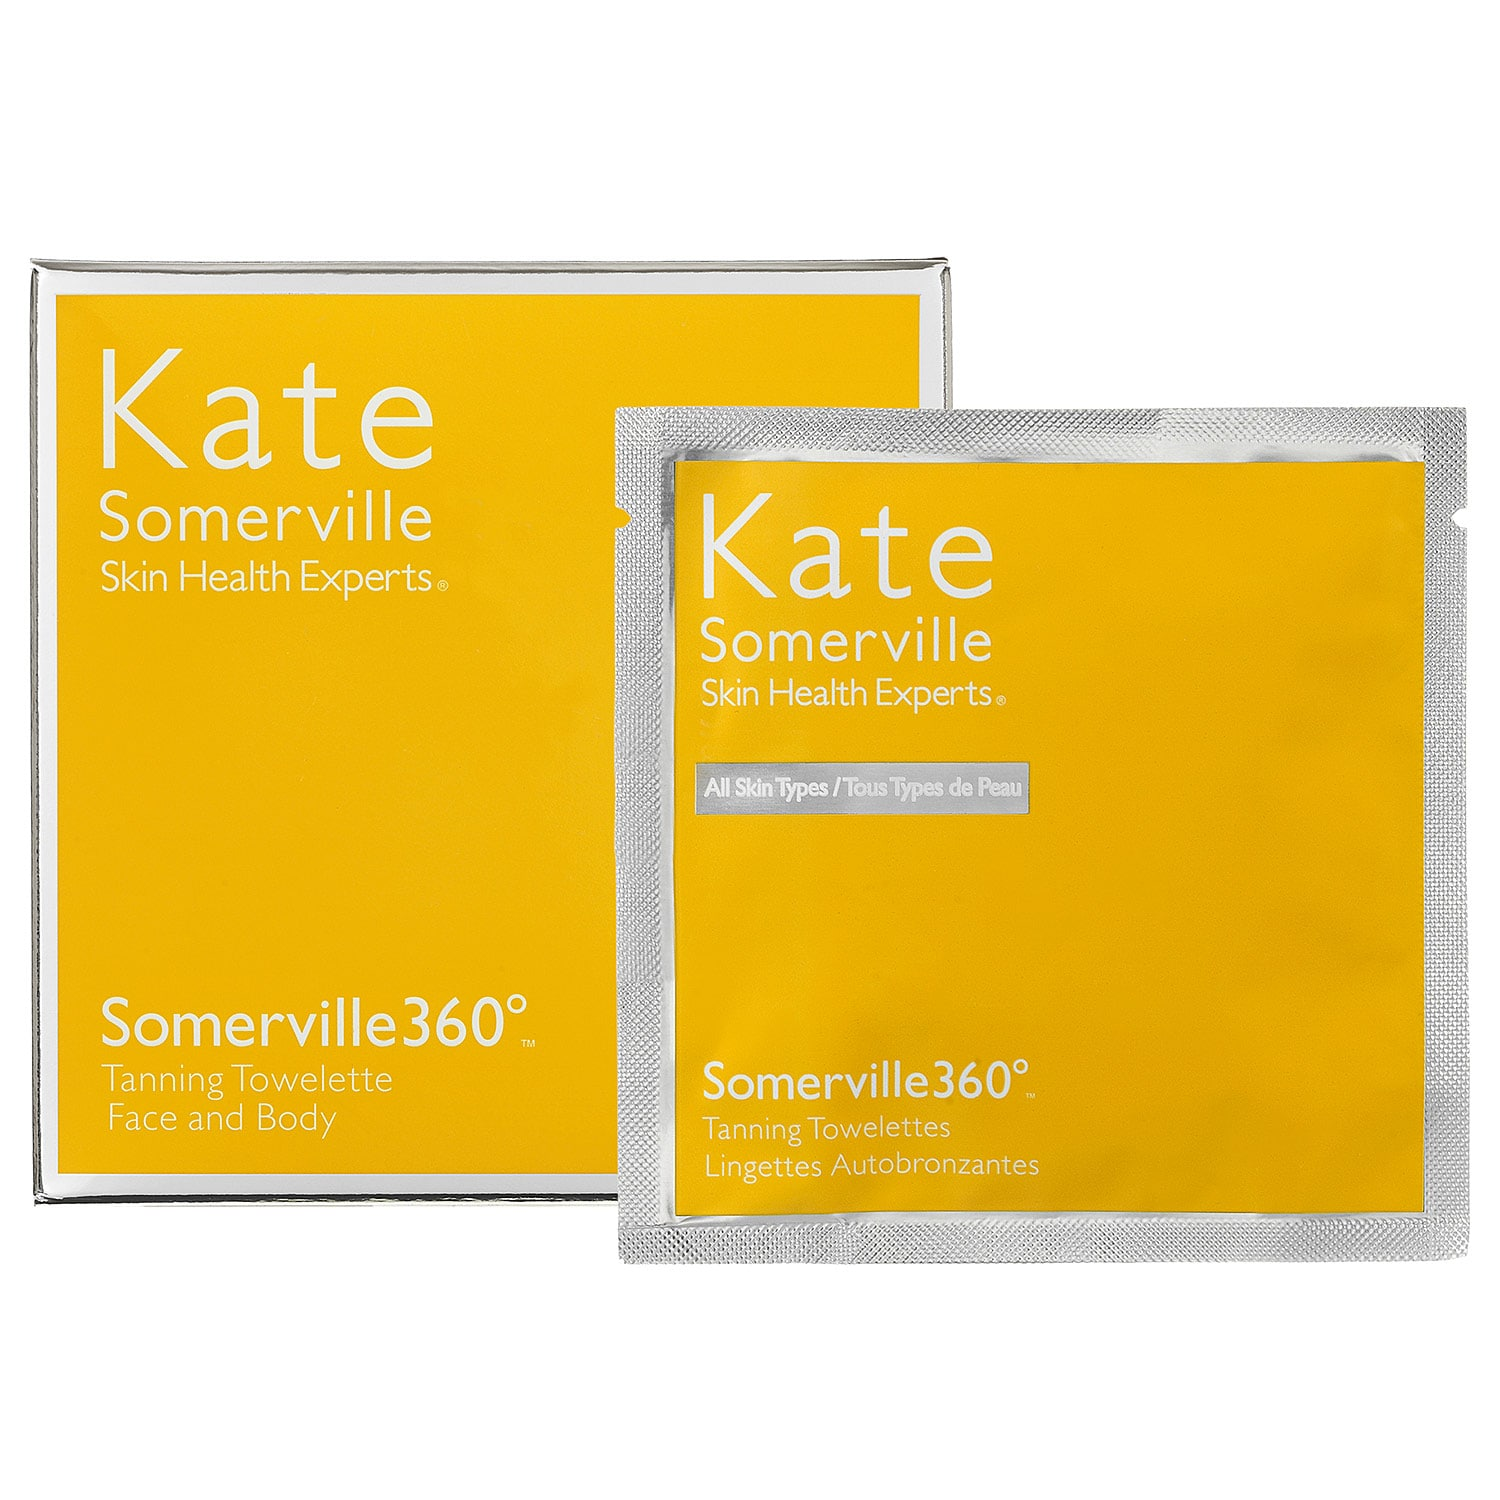 Somerville 360°™ Tanning Towelettes